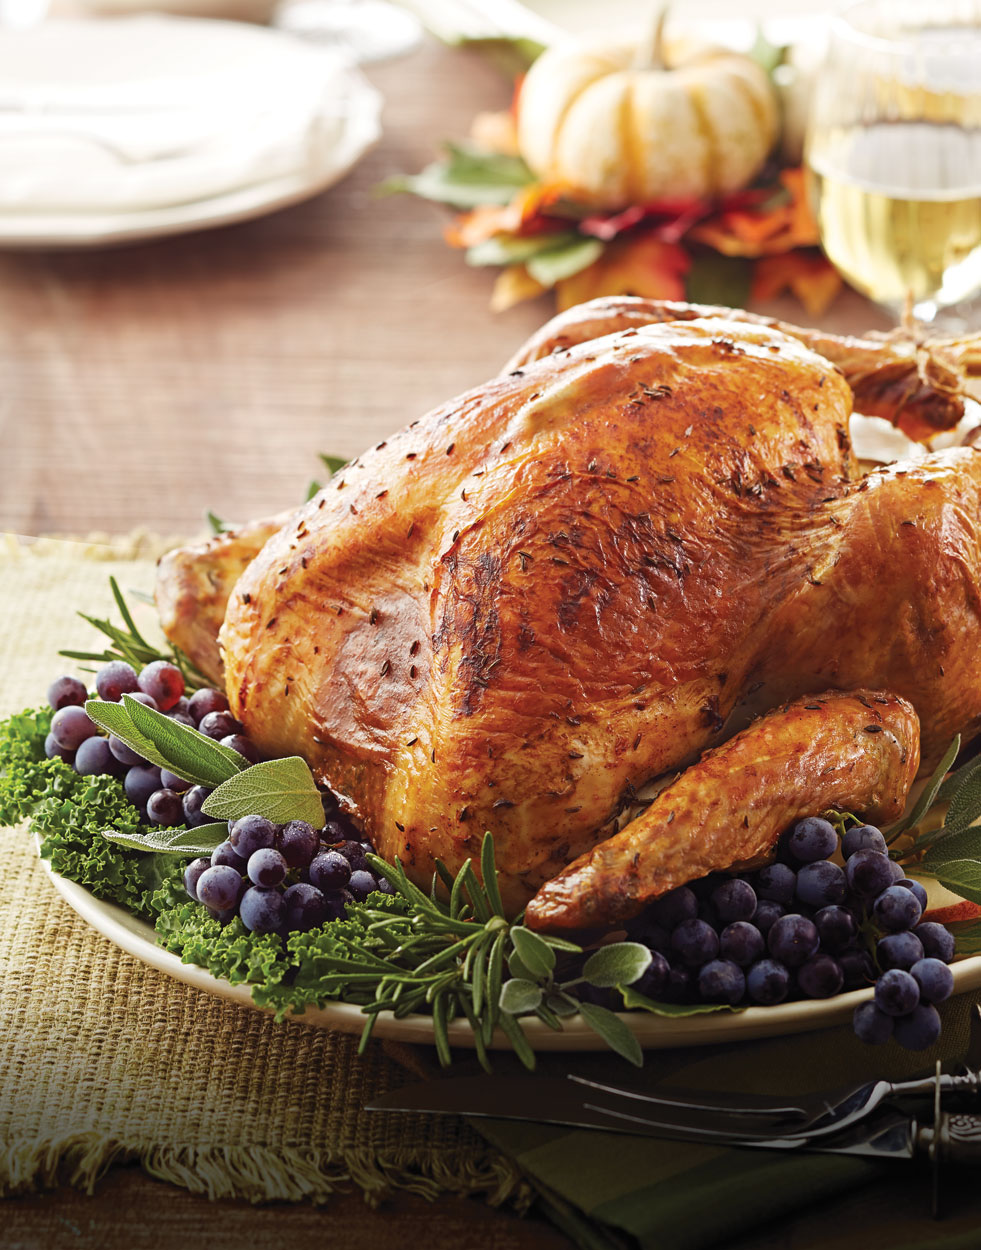 Roasted Turkey with caraway butter